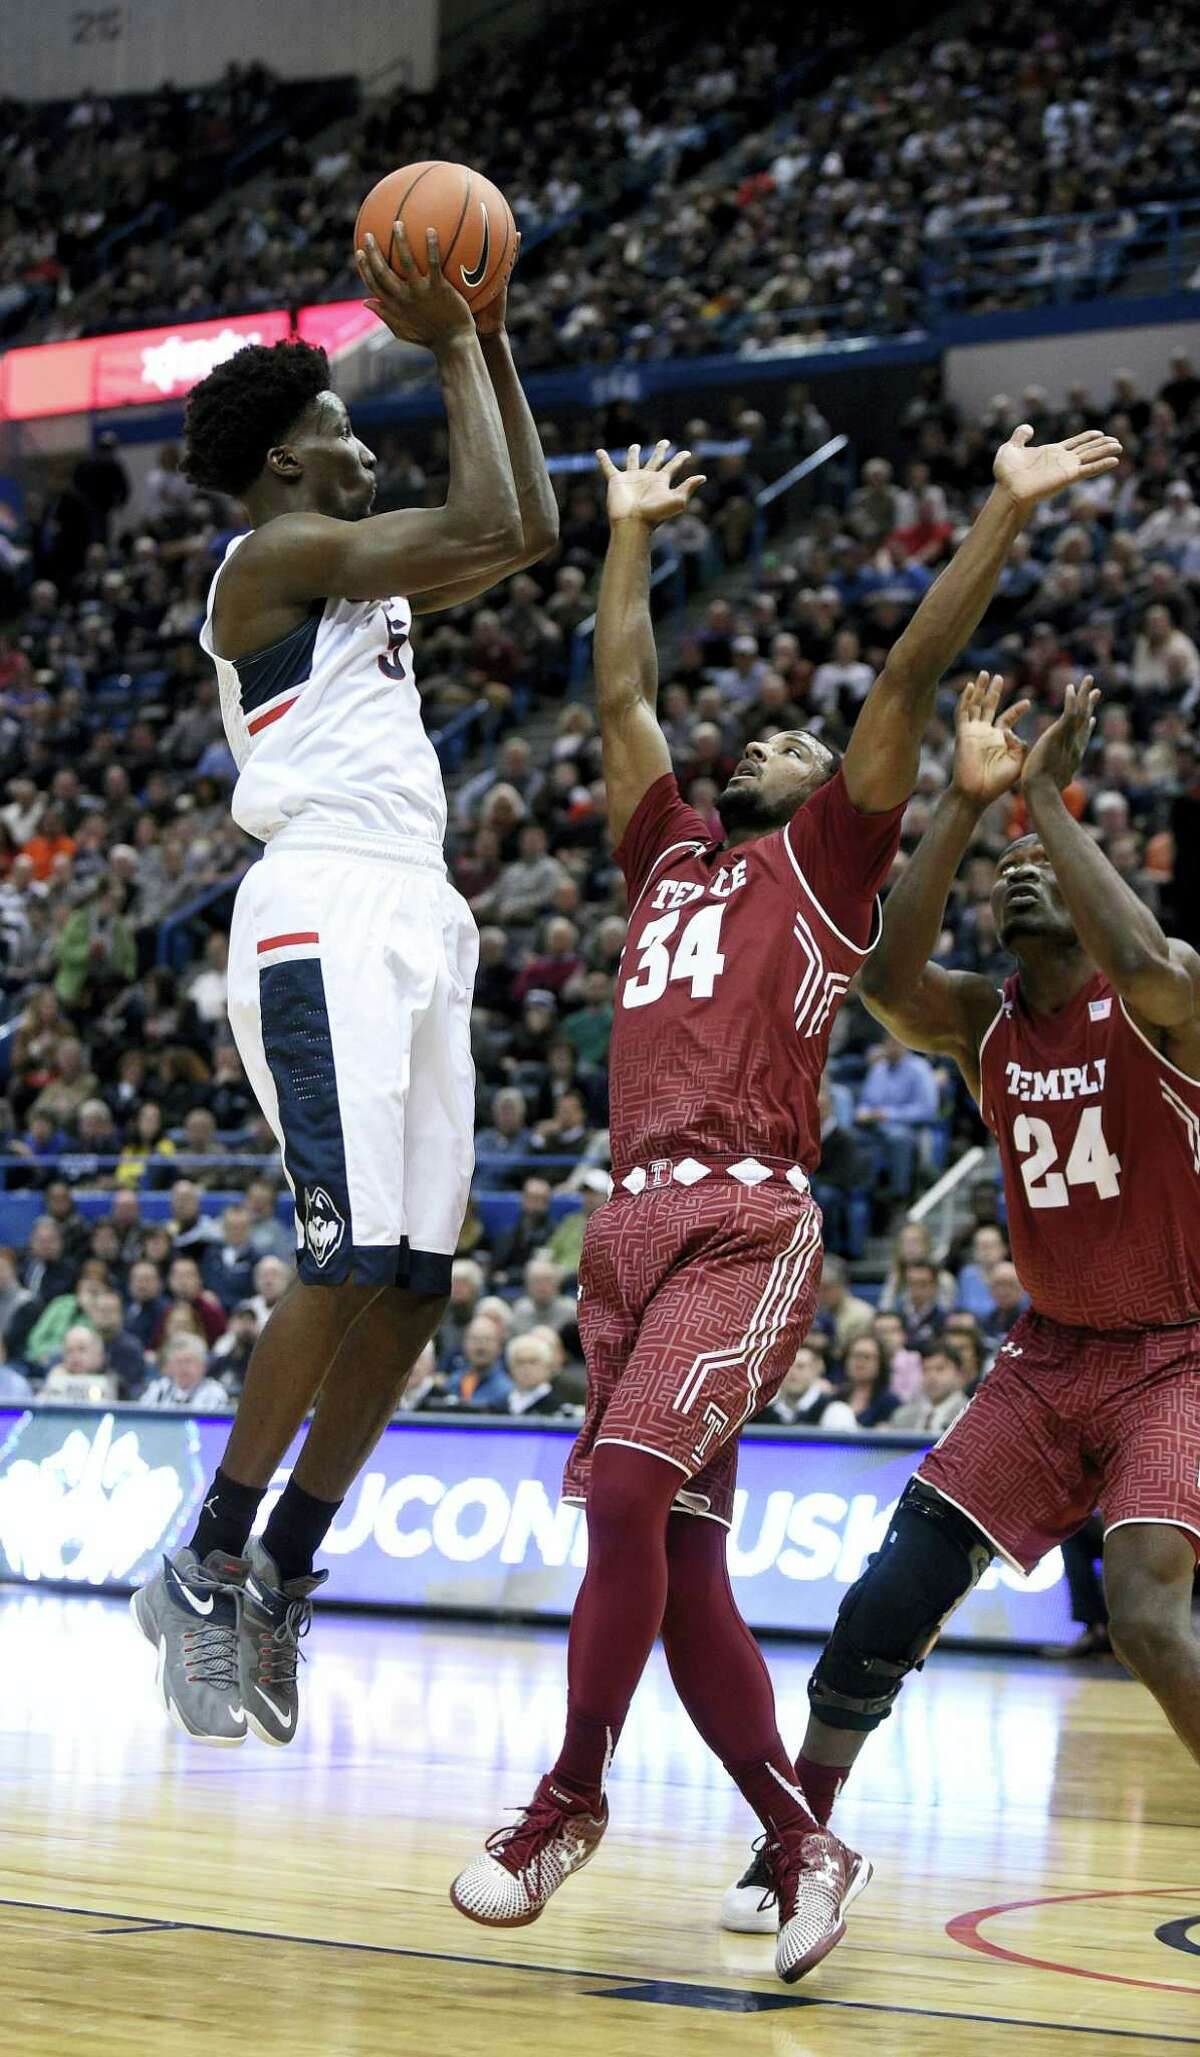 UConn's Daniel Hamilton, left, shoots over Temple's Devin Coleman during their game on Jan. 5.